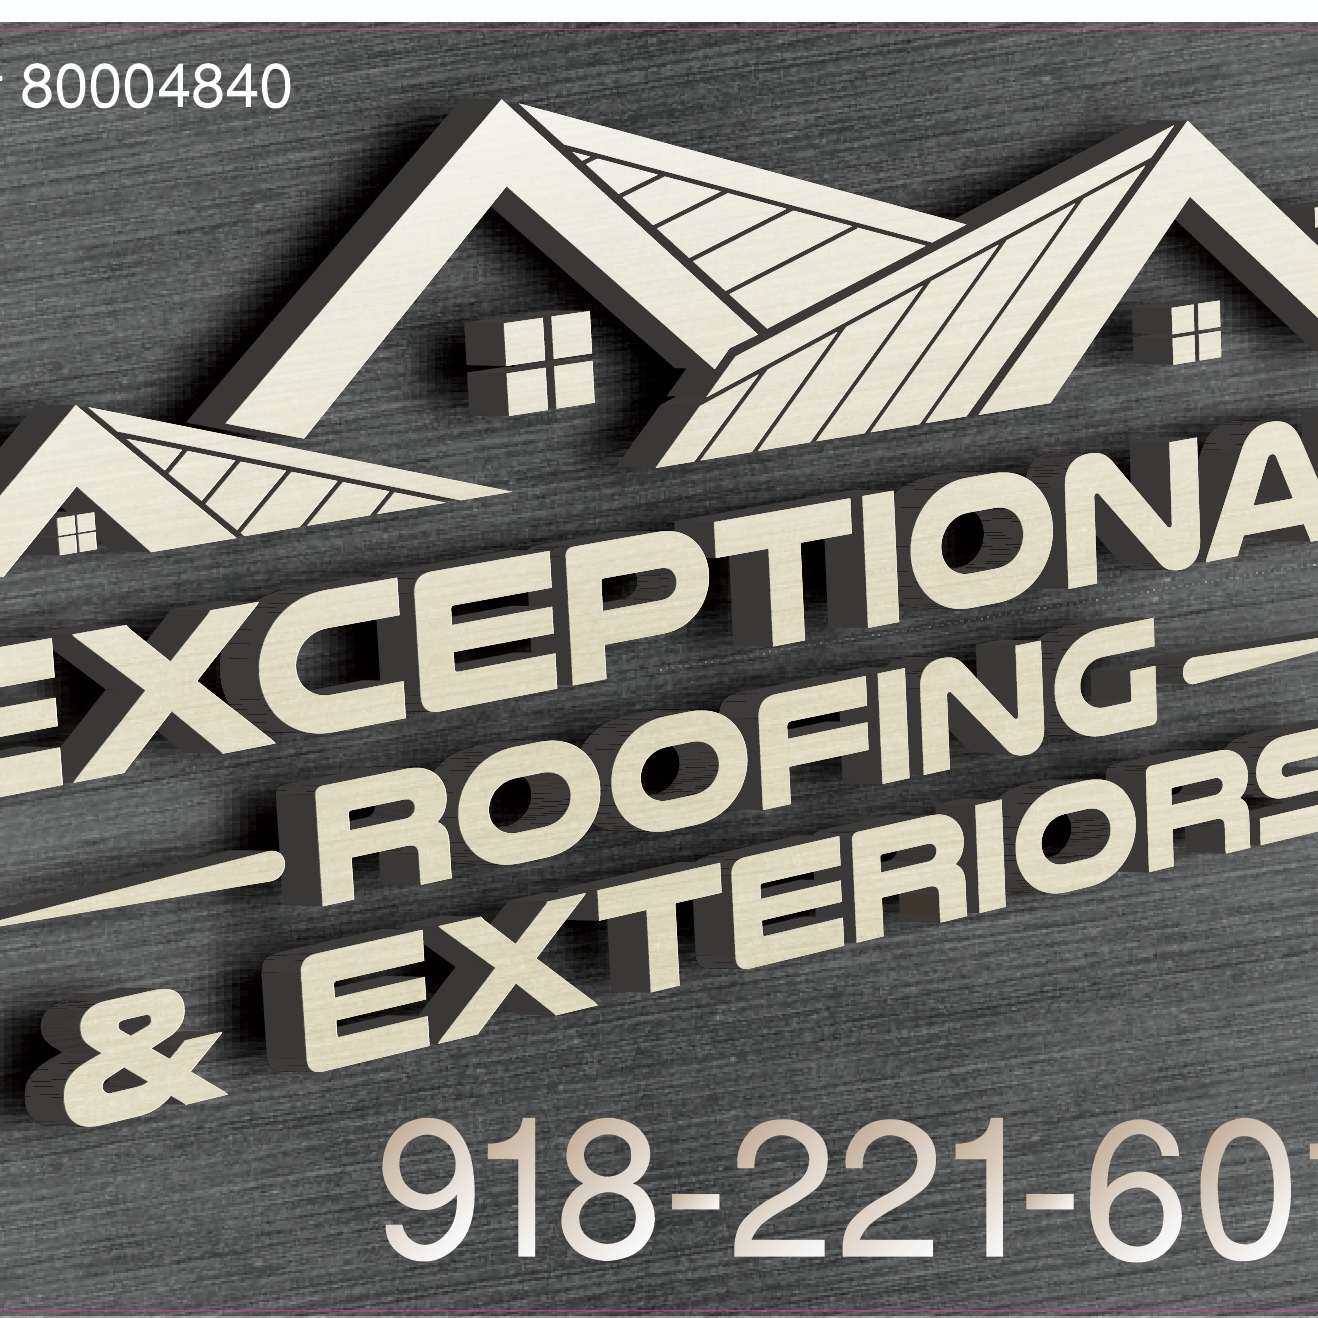 Exceptional Roofing & Exteriors